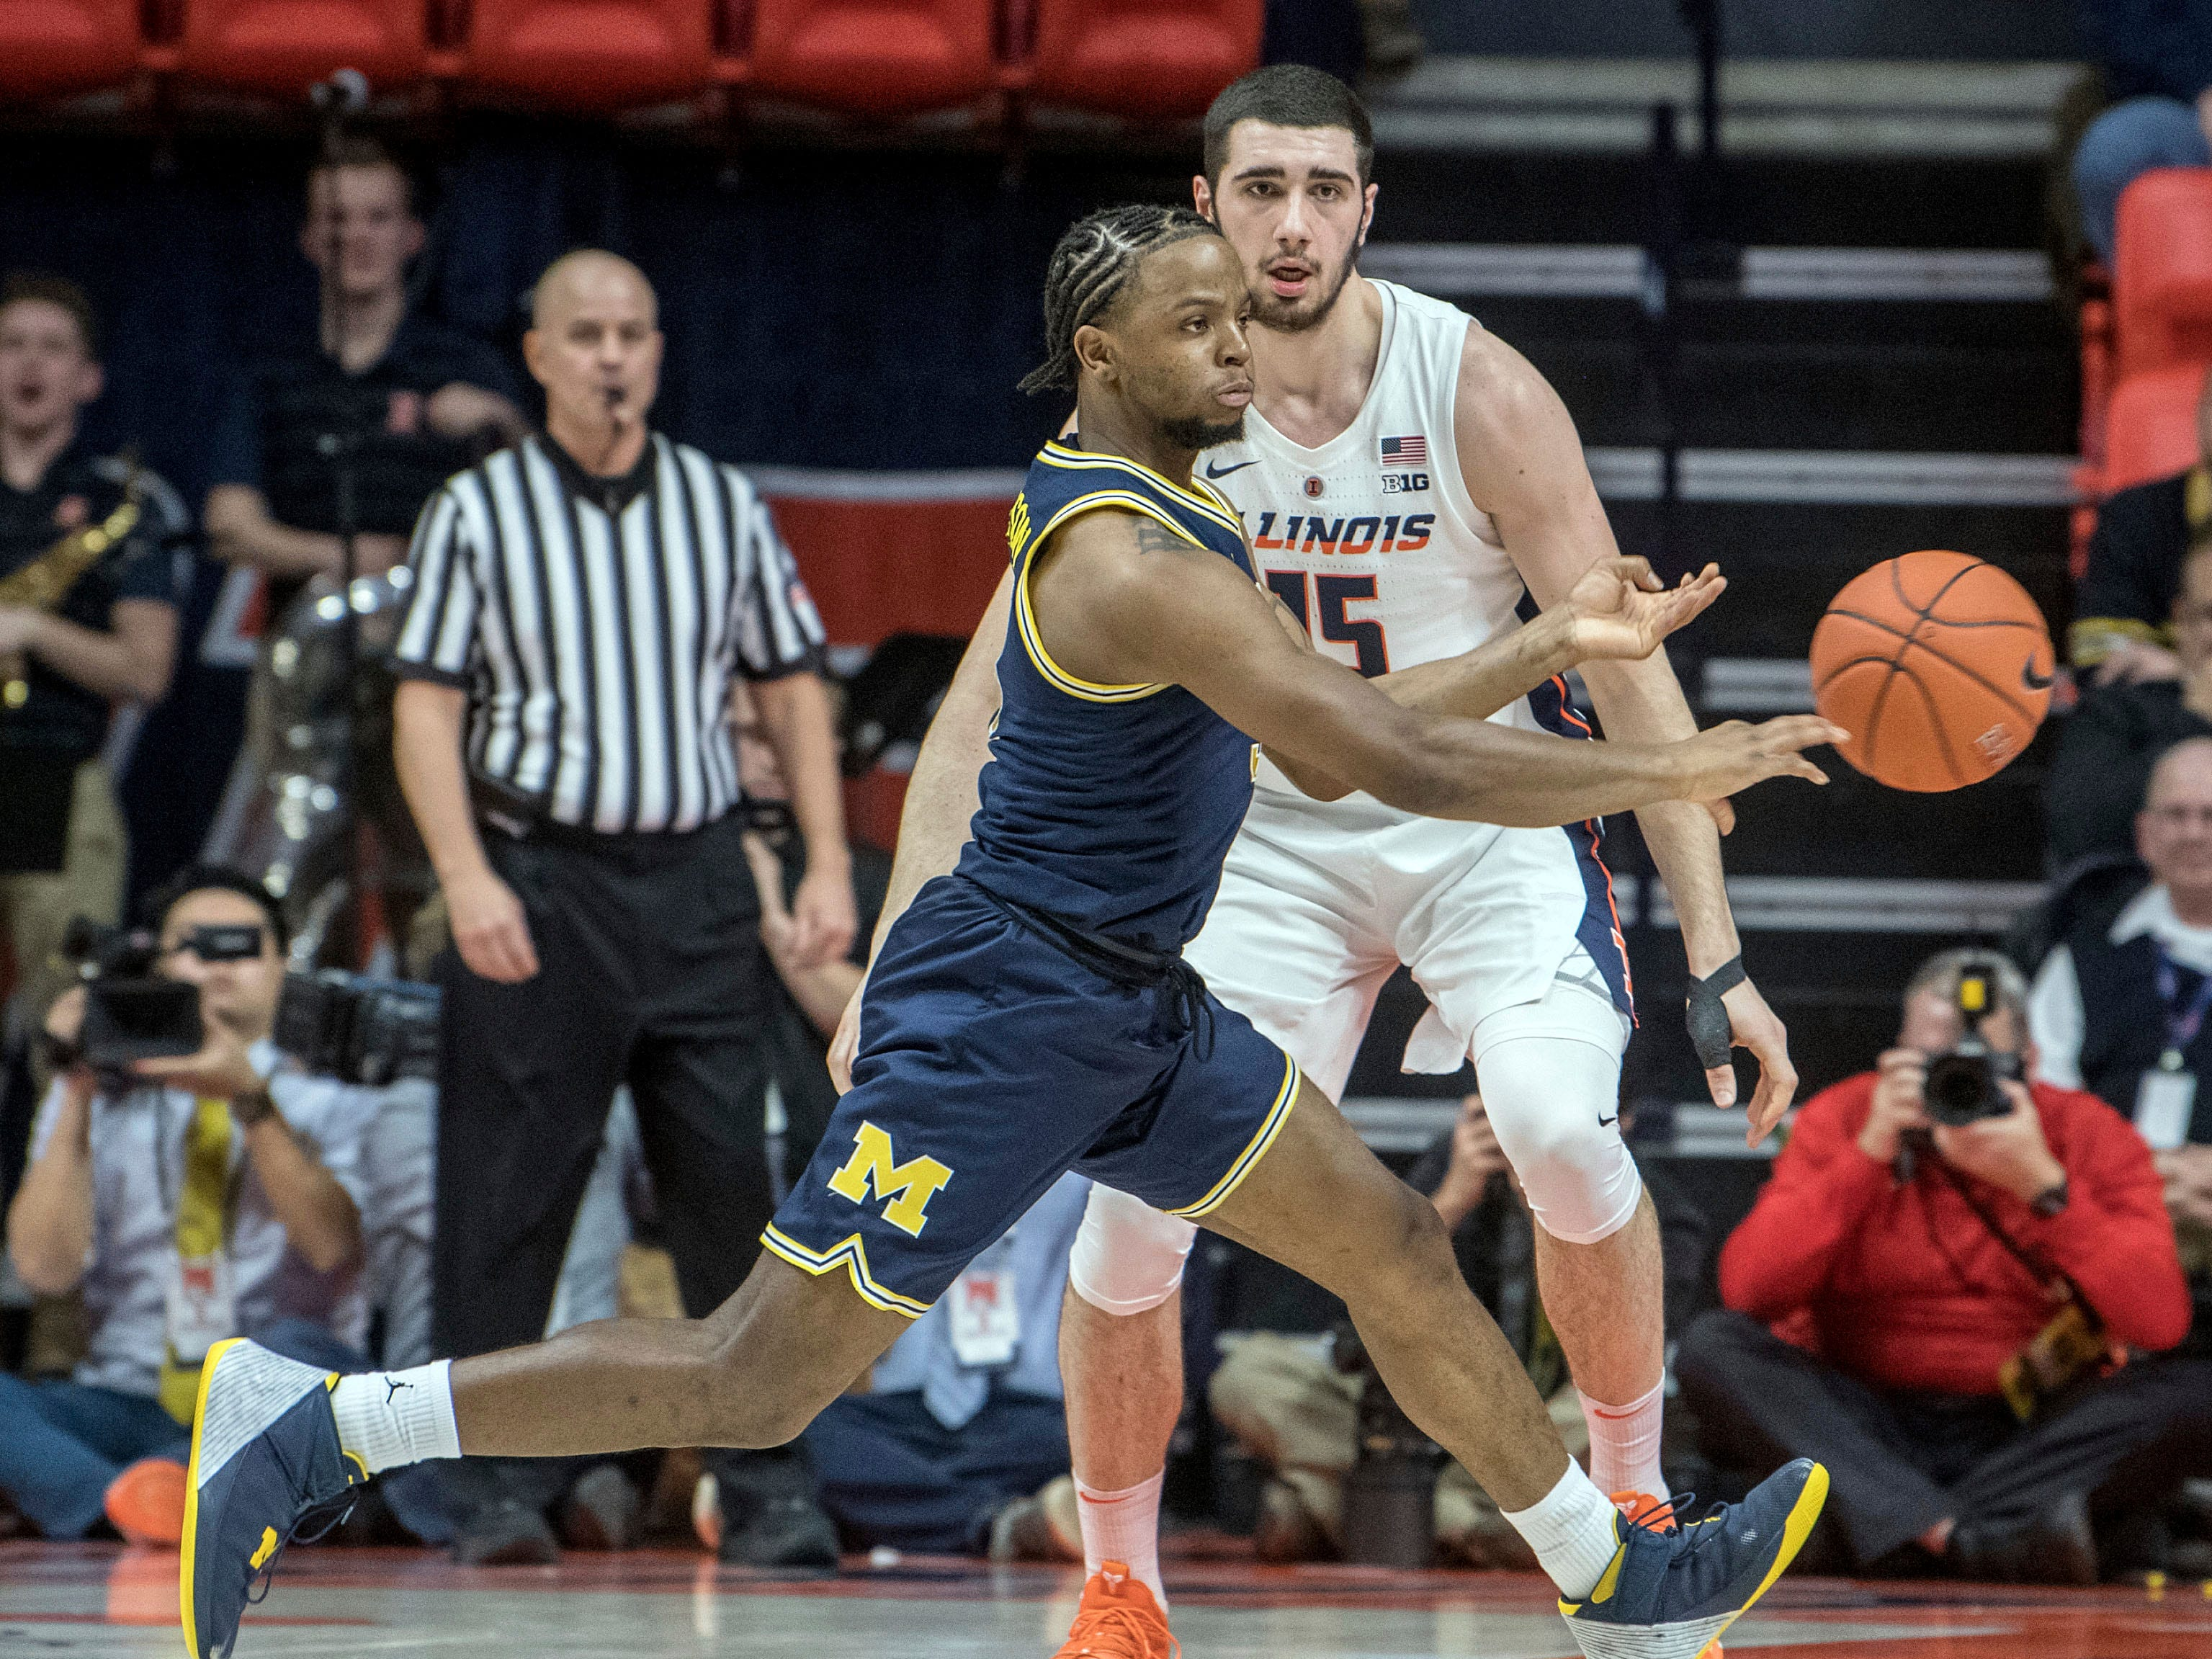 Michigan guard Zavier Simpson passes the ball as Illinois forward Giorgi Bezhanishvili (15) defends during the first half of an NCAA college basketball game in Champaign, Ill., Wednesday, Jan. 10, 2019.